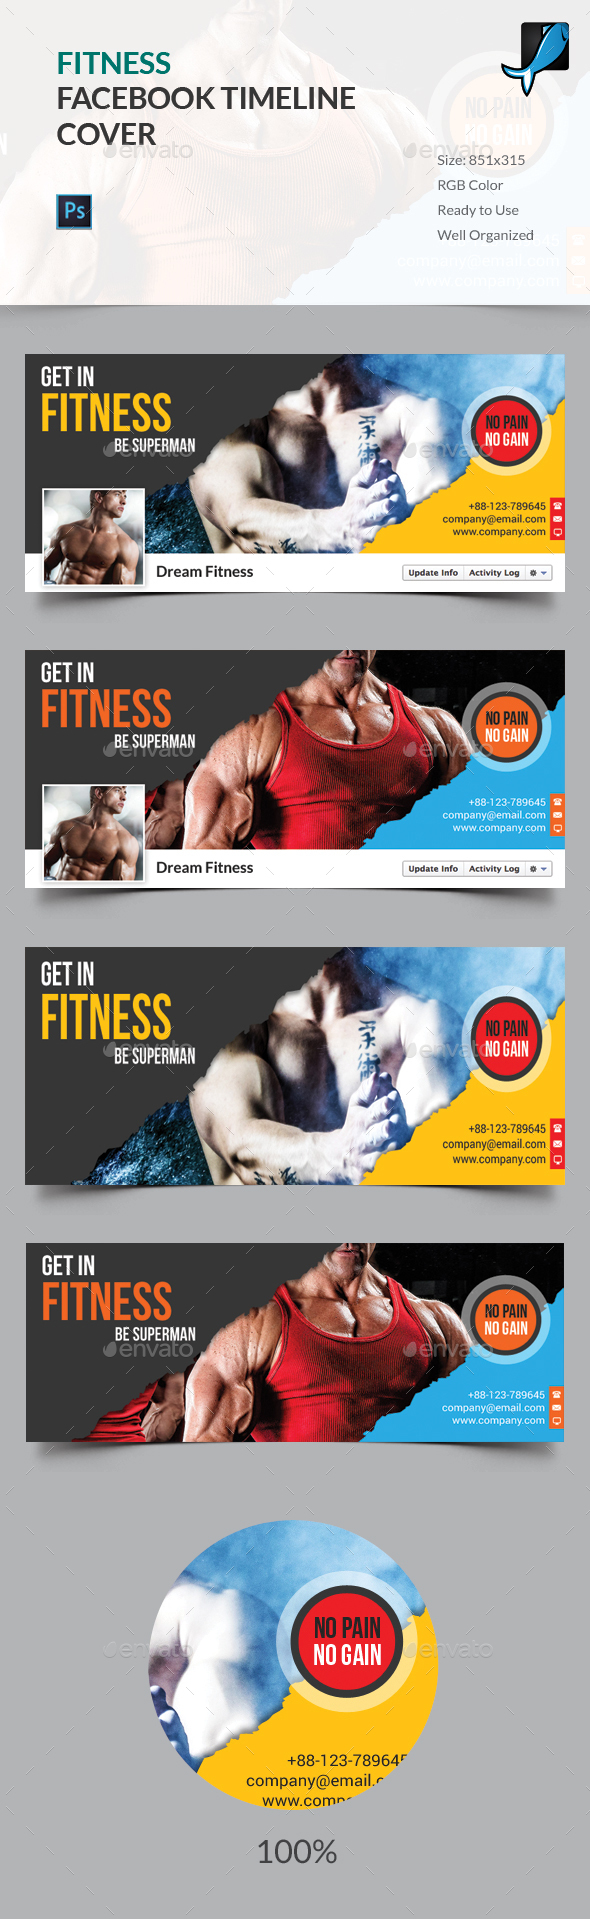 Fitness Facebook Timeline Cover - Facebook Timeline Covers Social Media